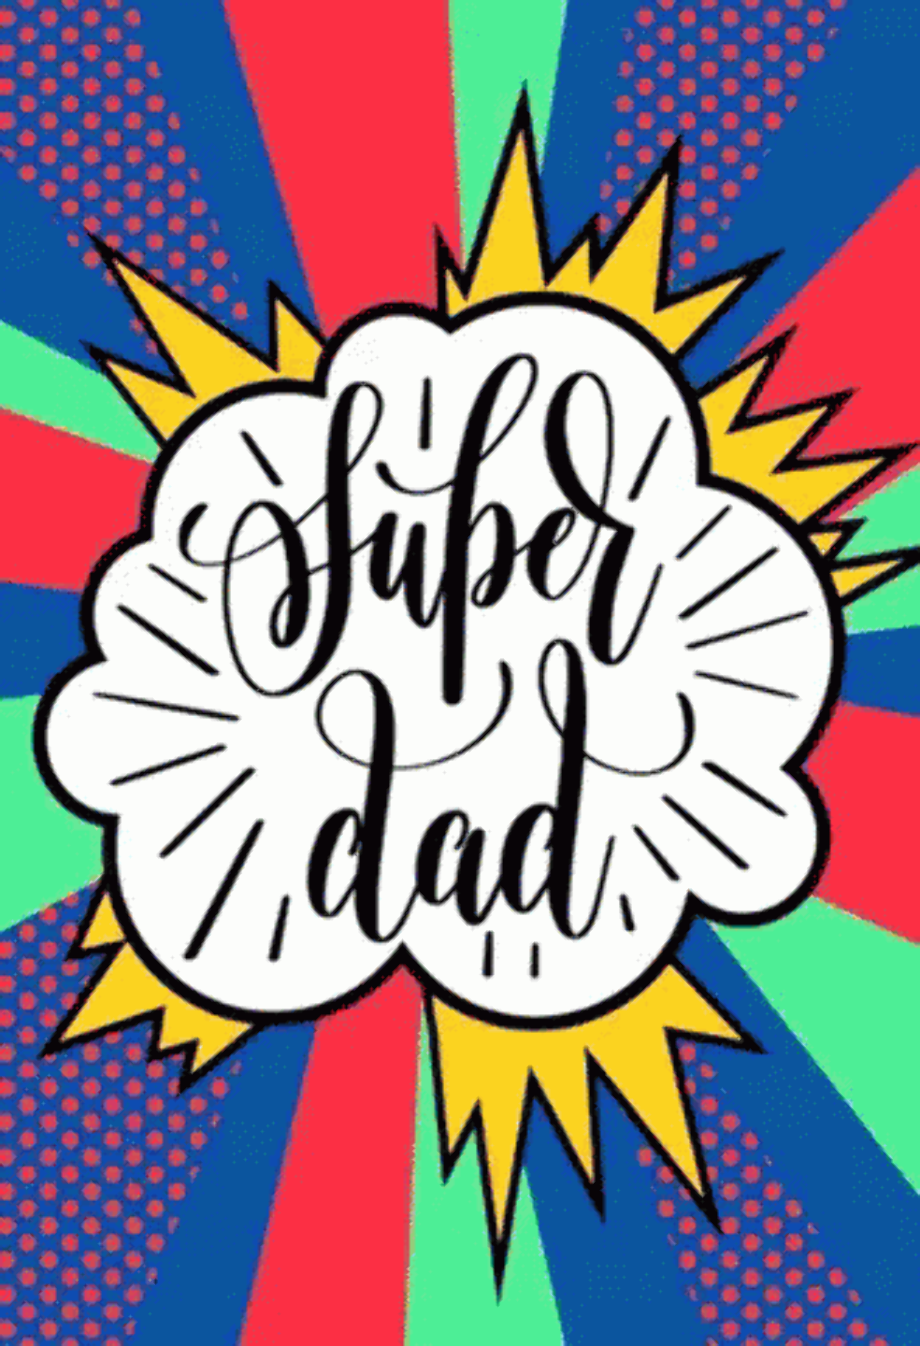 Download Super Dad Logo Black And White PNG Image with No